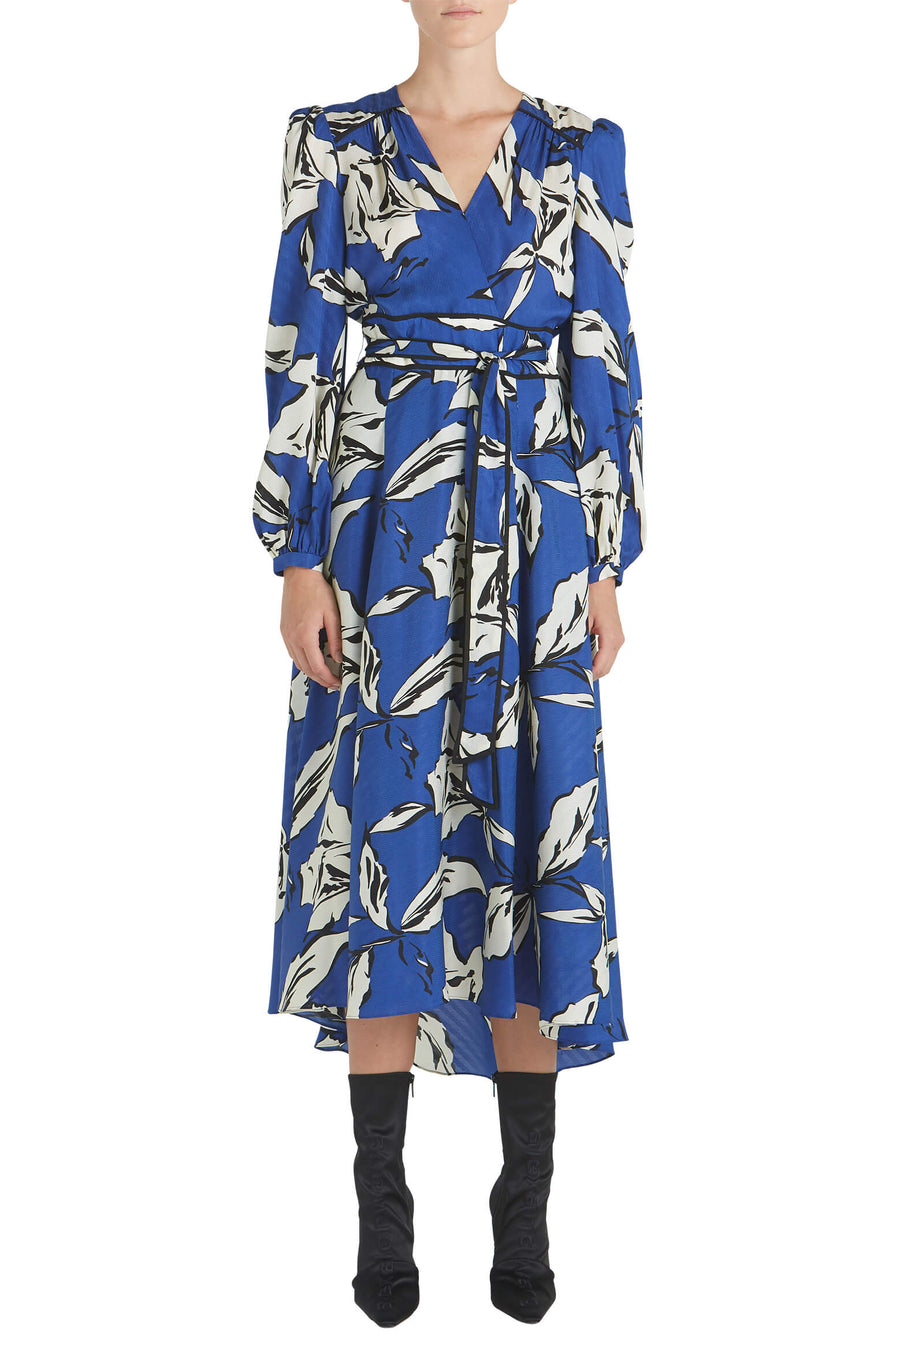 Veronica Beard Mclean Dress in Ultramarine Multi from The New Trend